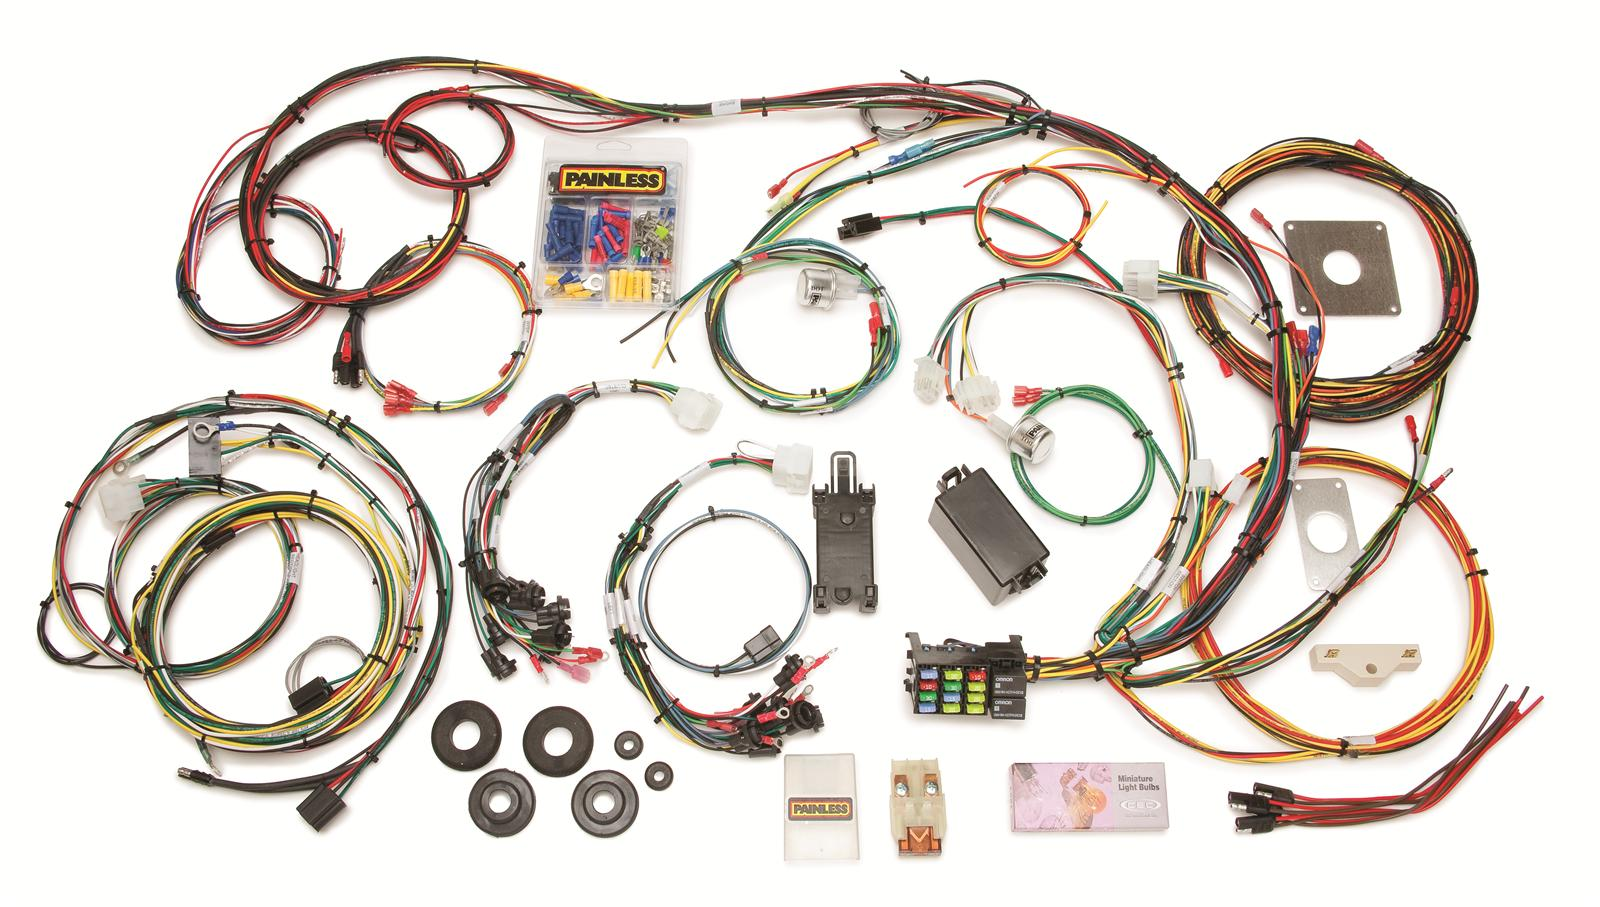 hight resolution of 65 mustang wire harness kit wiring diagrams value 1966 mustang wiring harness kit